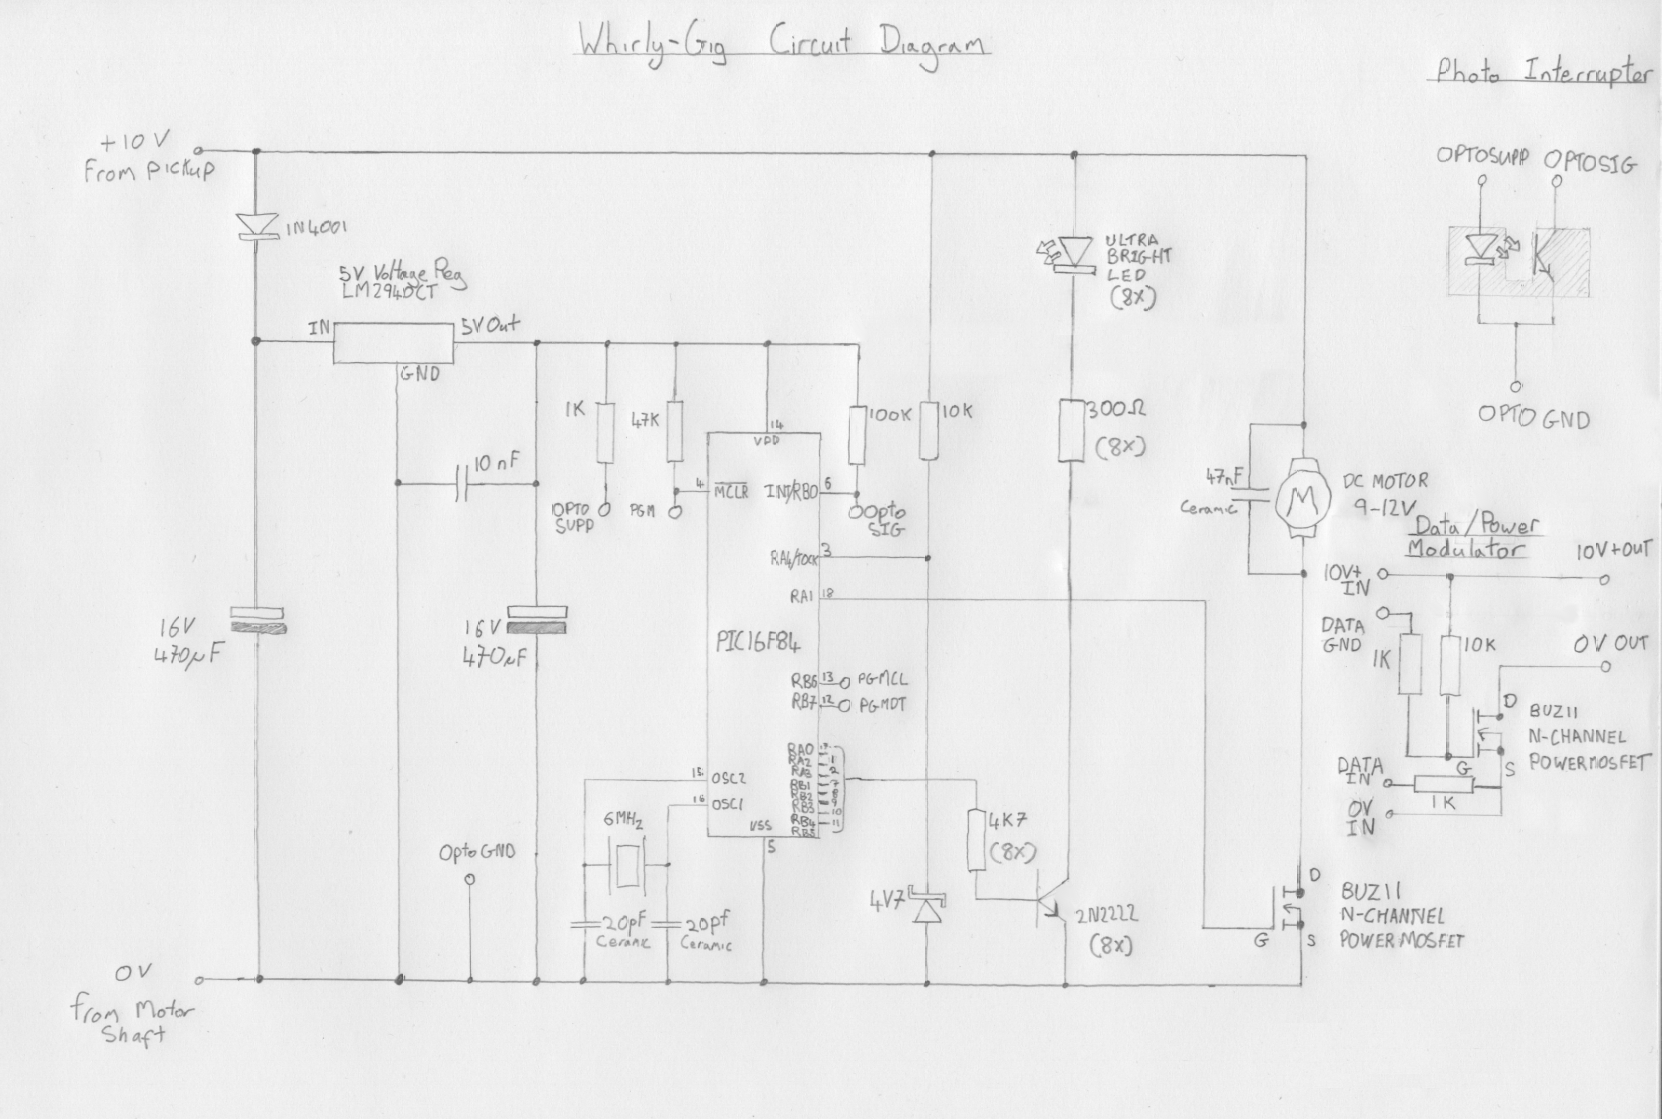 Channel Master Rotor Wiring Diagram : 35 Wiring Diagram